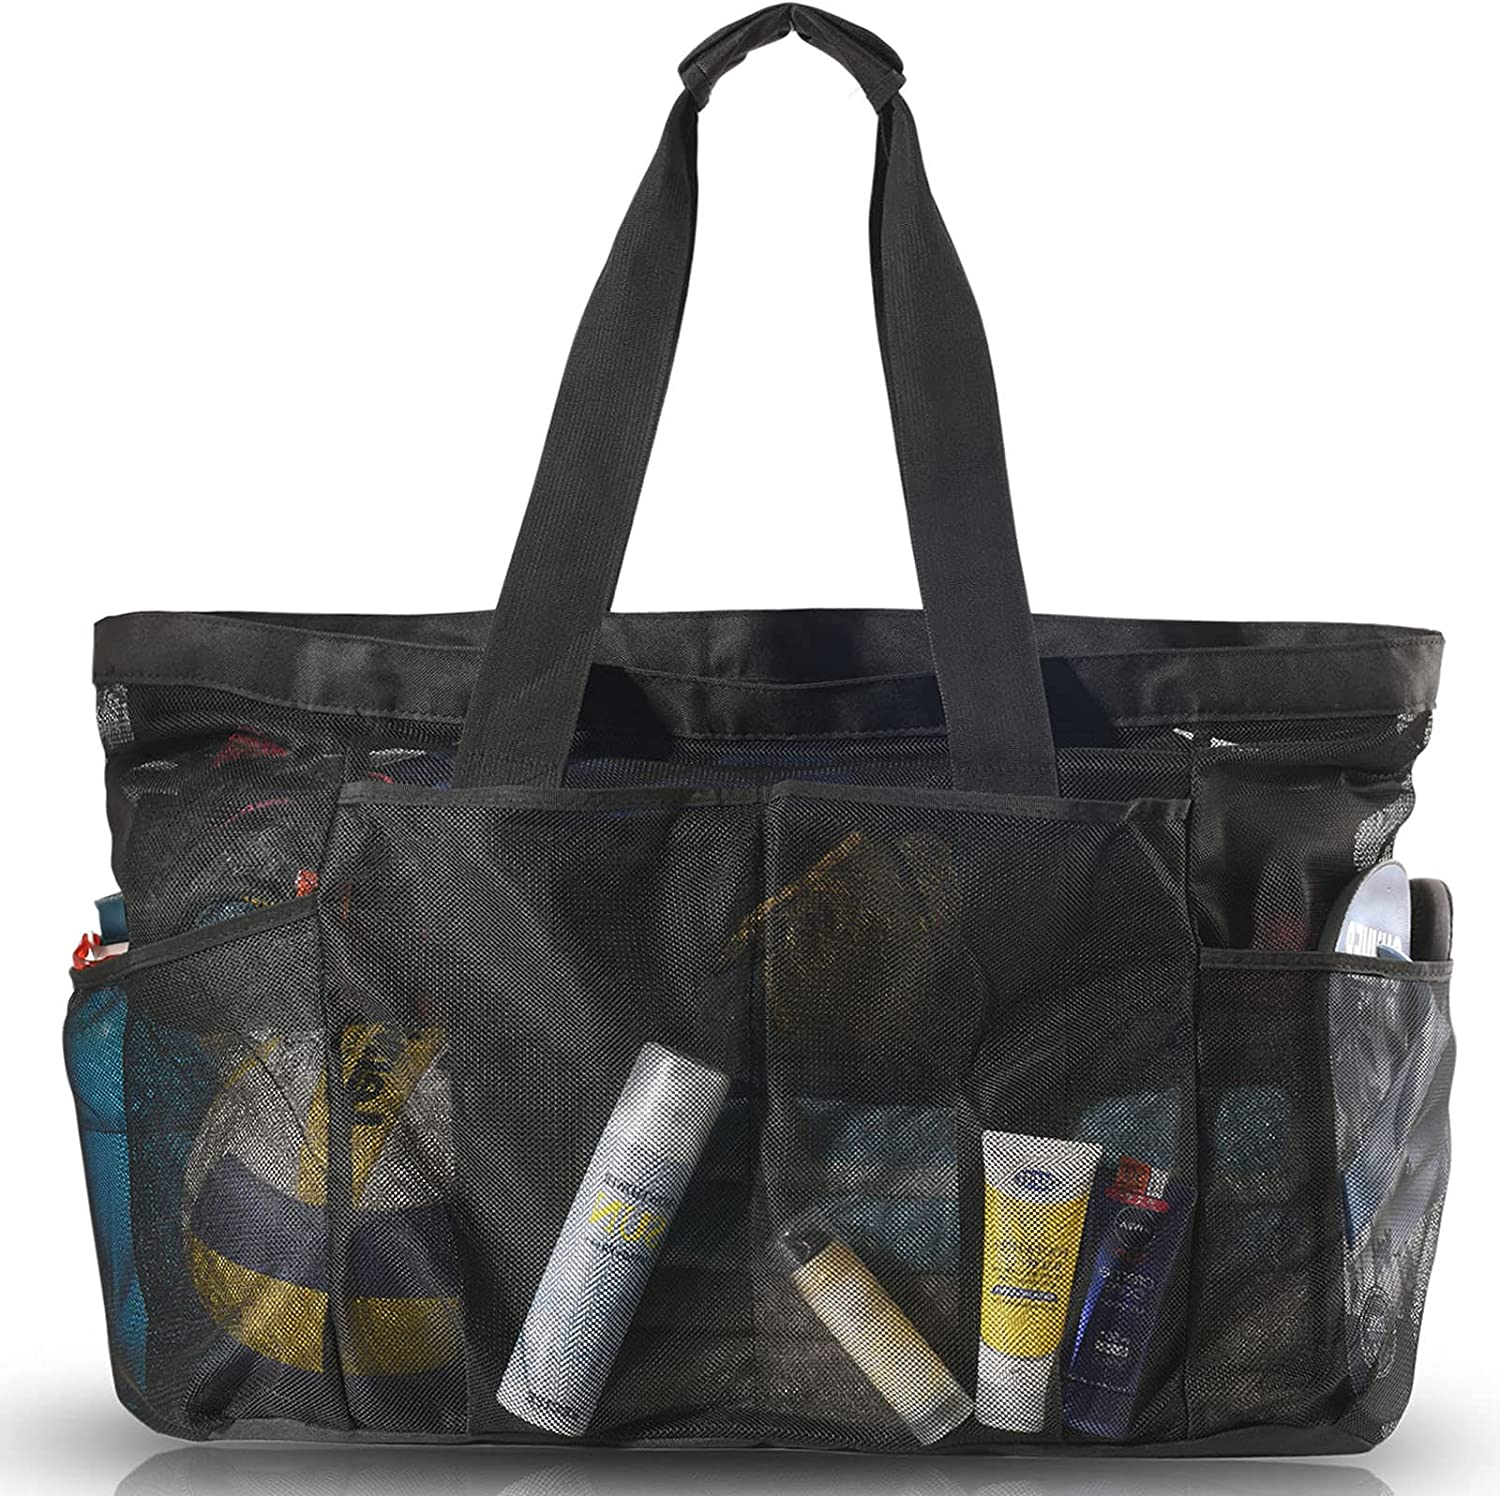 Bulex Extra Large Beach Bags and Totes with Mesh Gorgeous - Tote XXL Very popular Bag